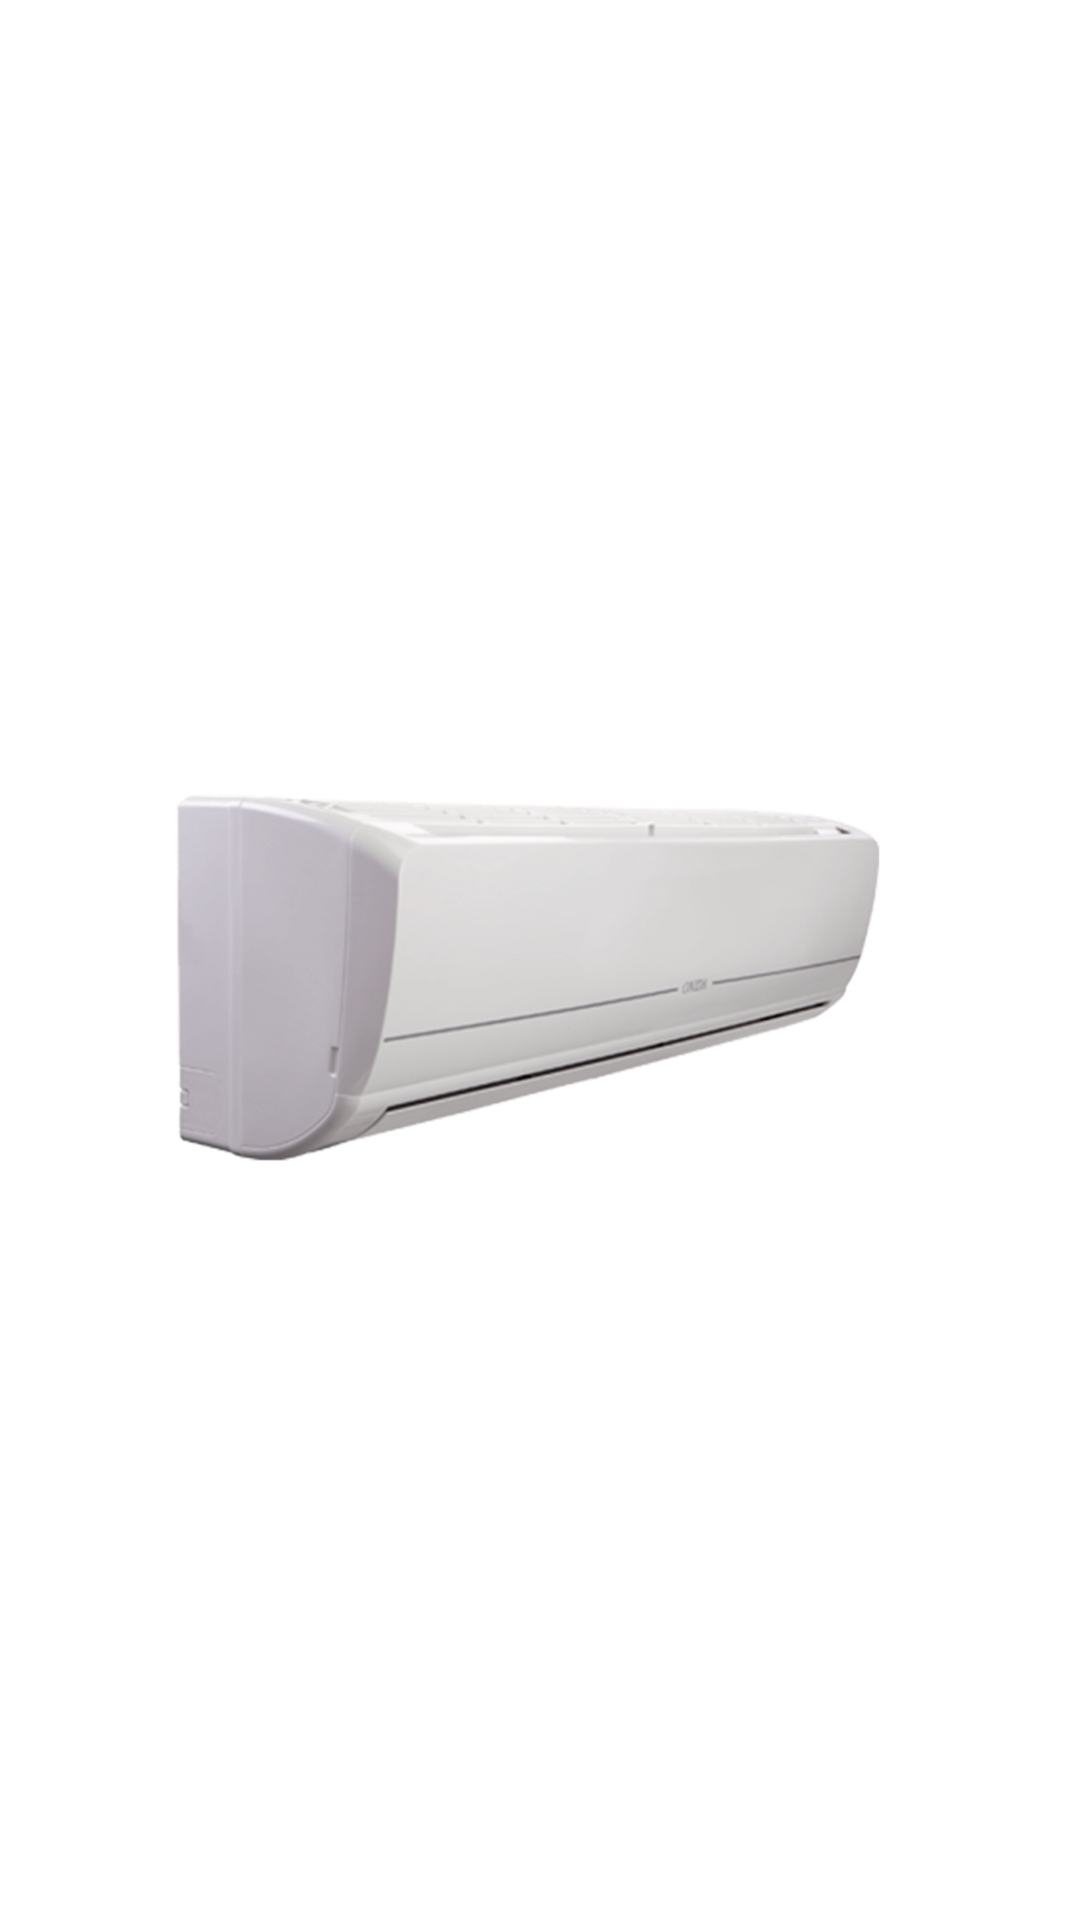 Onida Smart SA185SMH 1.5 Ton 5 Star Split AC